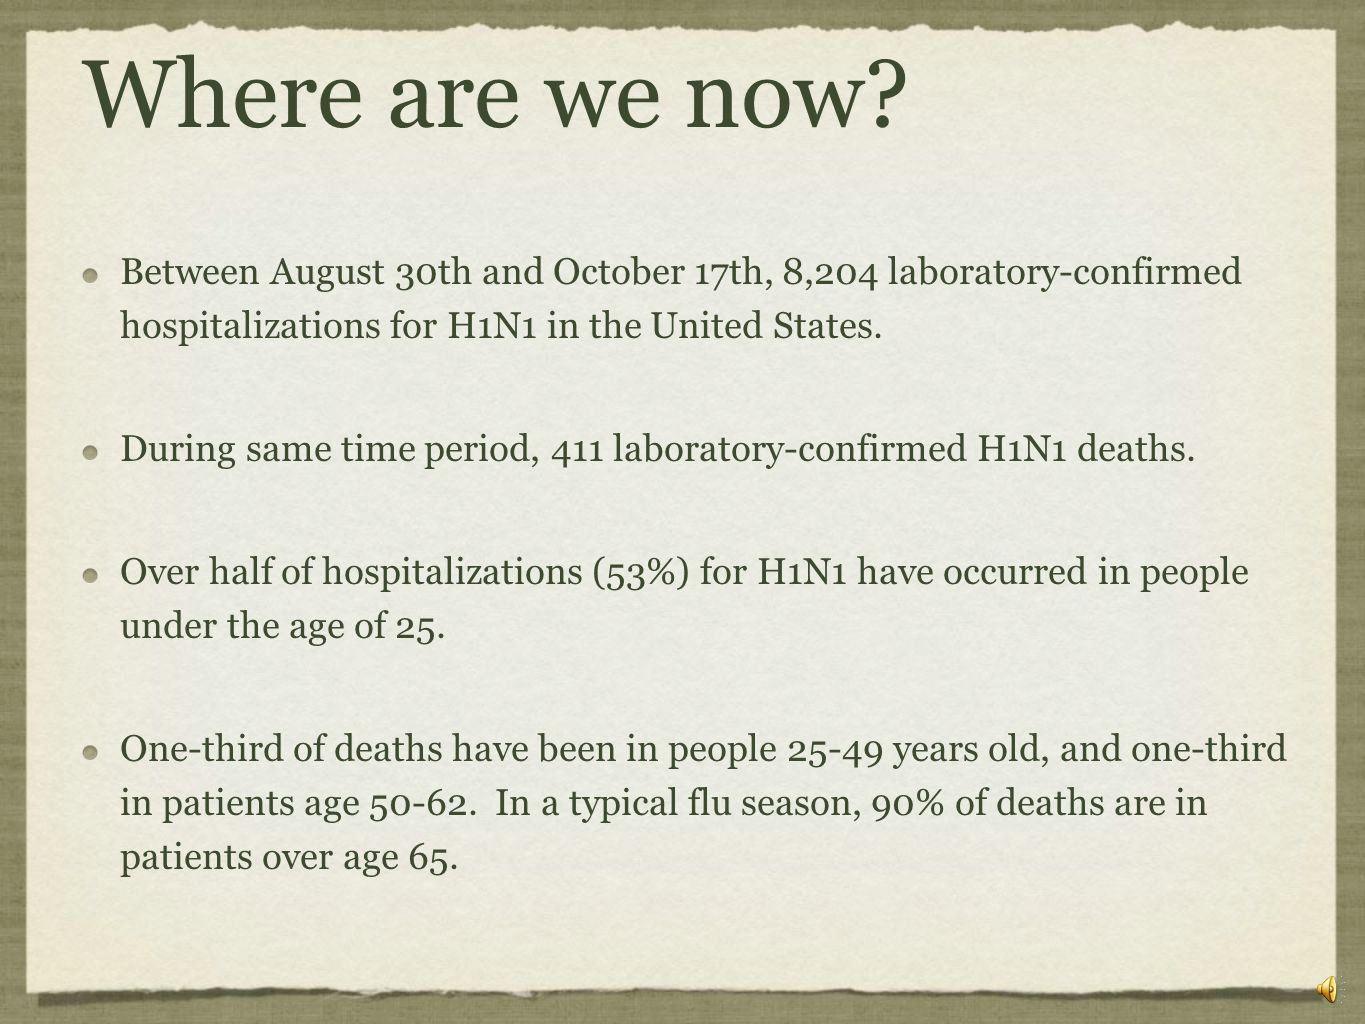 Where are we now Between August 30th and October 17th, 8,204 laboratory-confirmed hospitalizations for H1N1 in the United States.